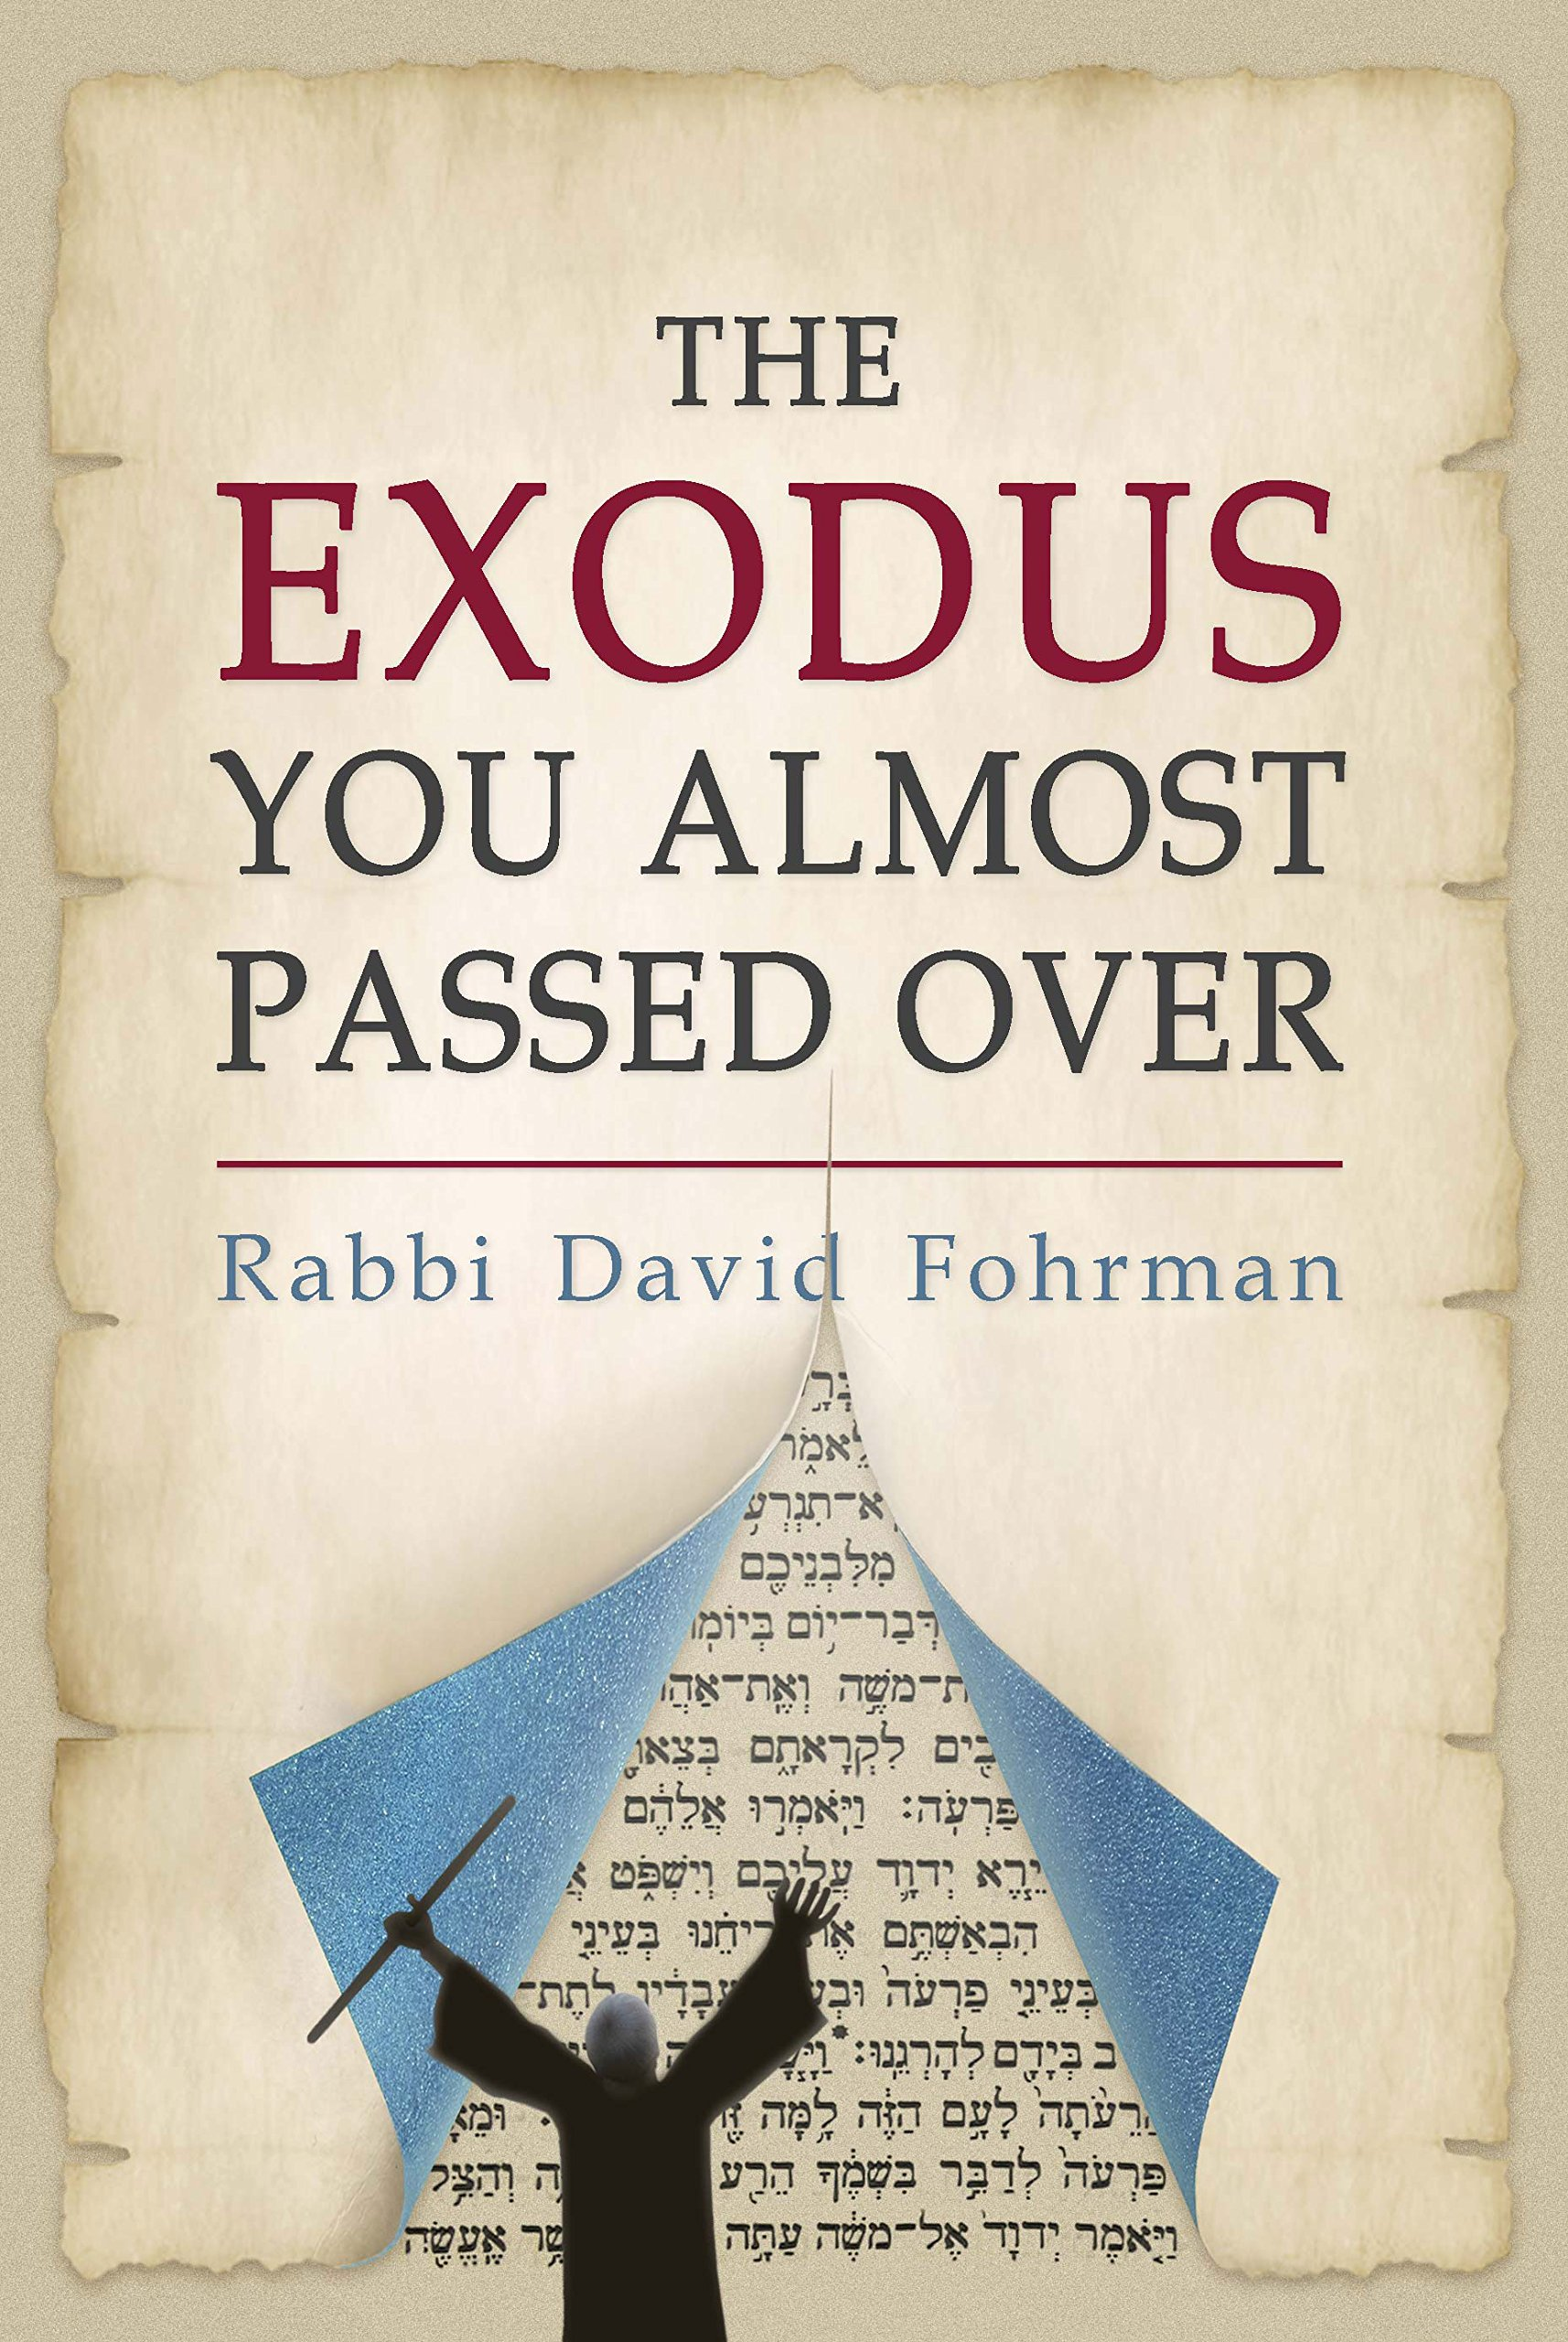 About Passover